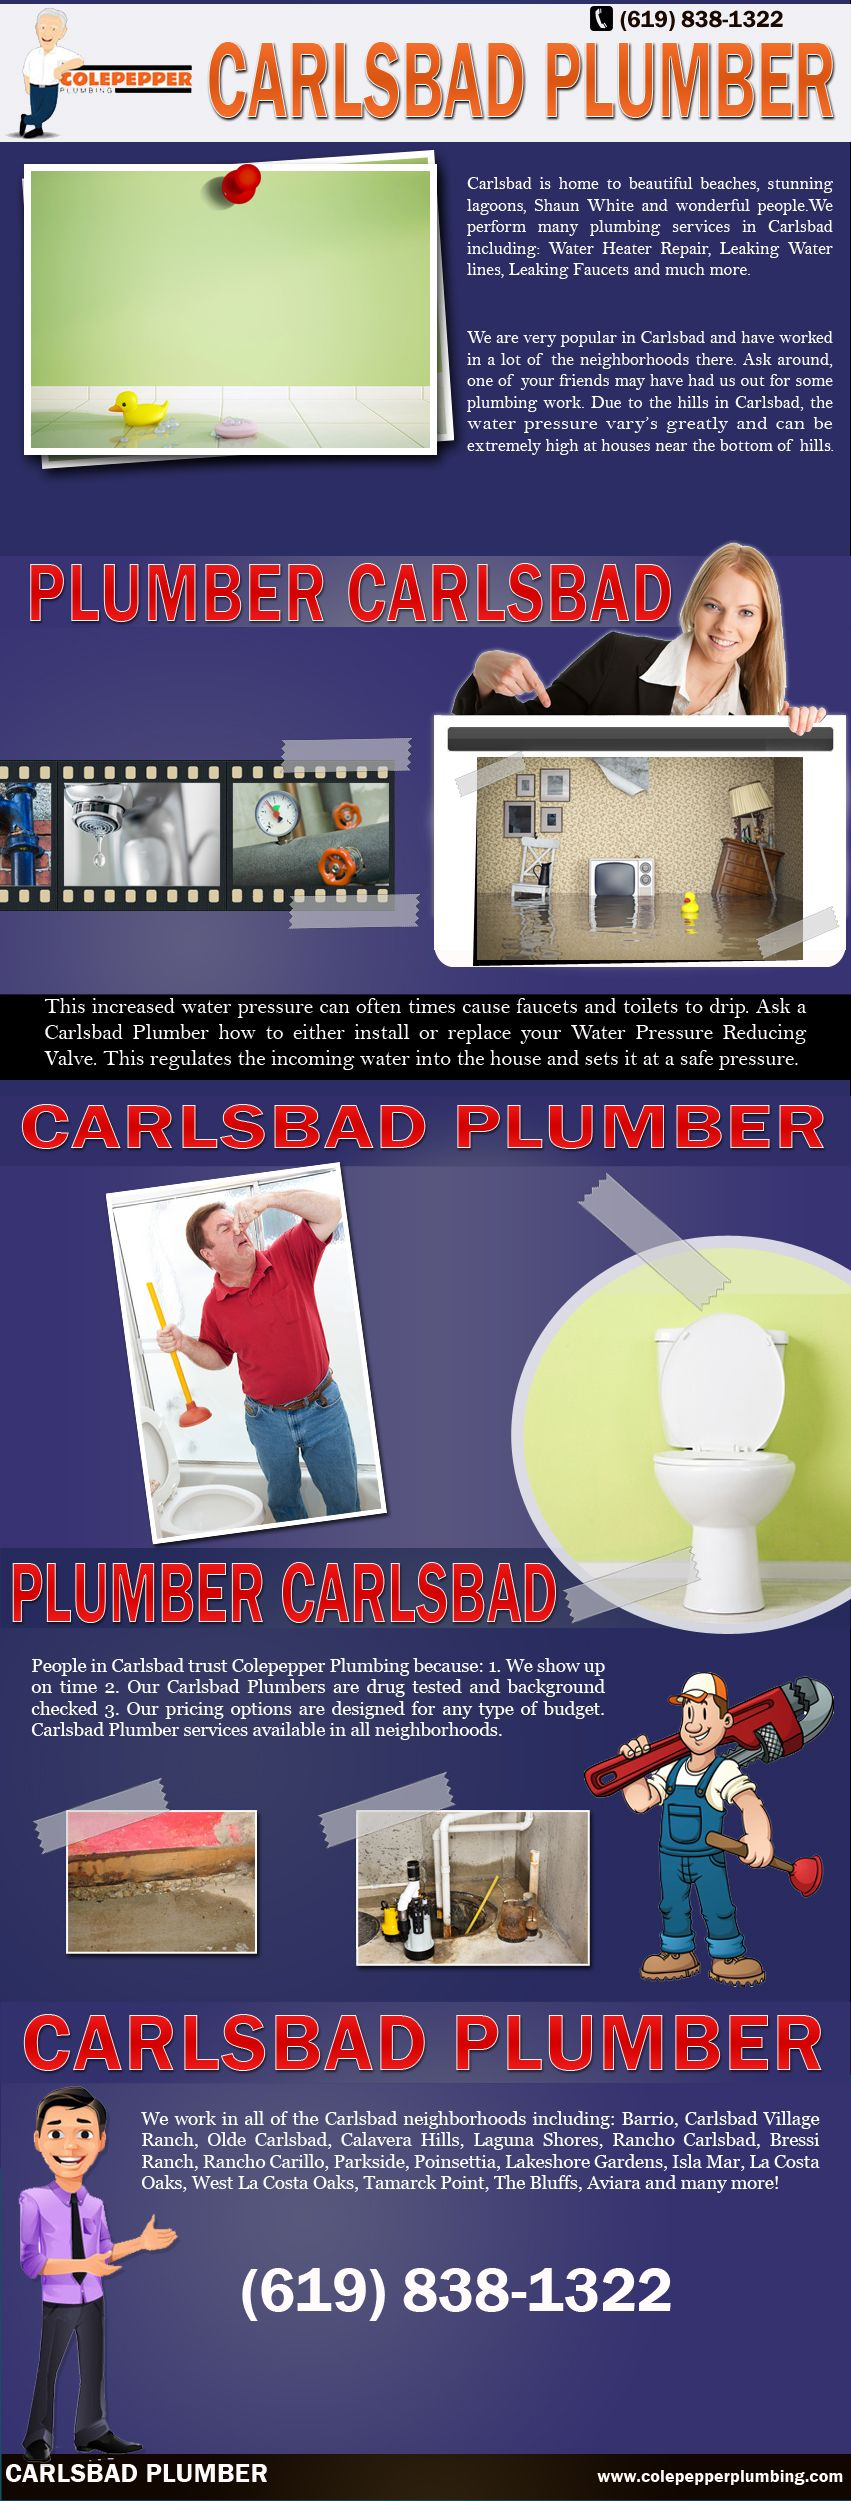 When it comes to plumbing repair work around your home especially